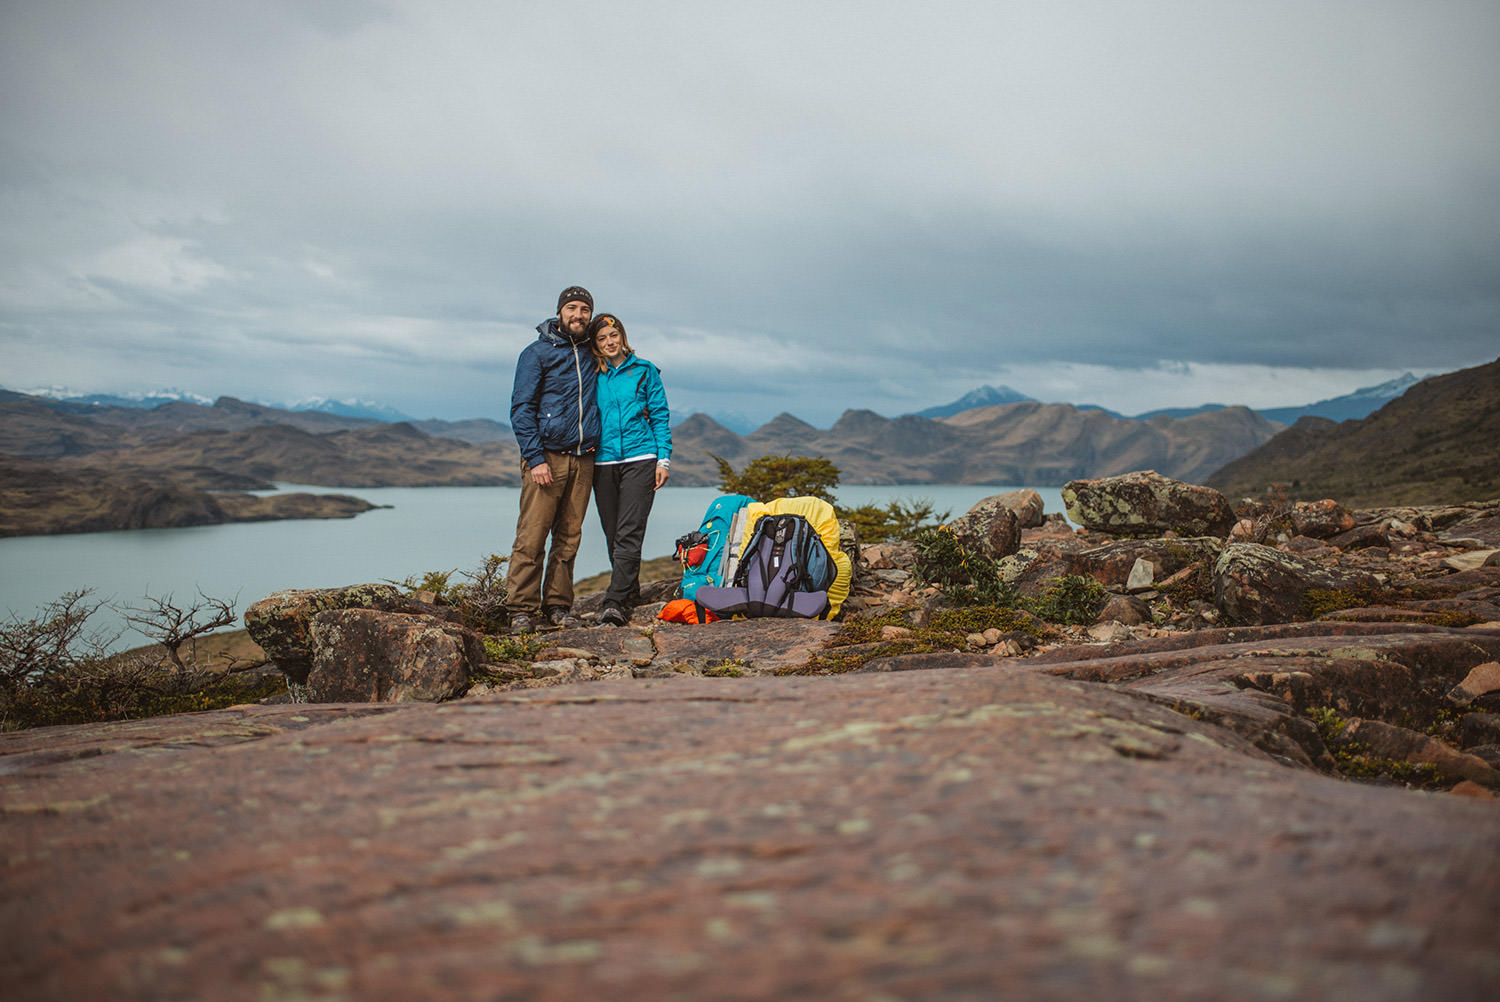 Patagonia Travel Photographer